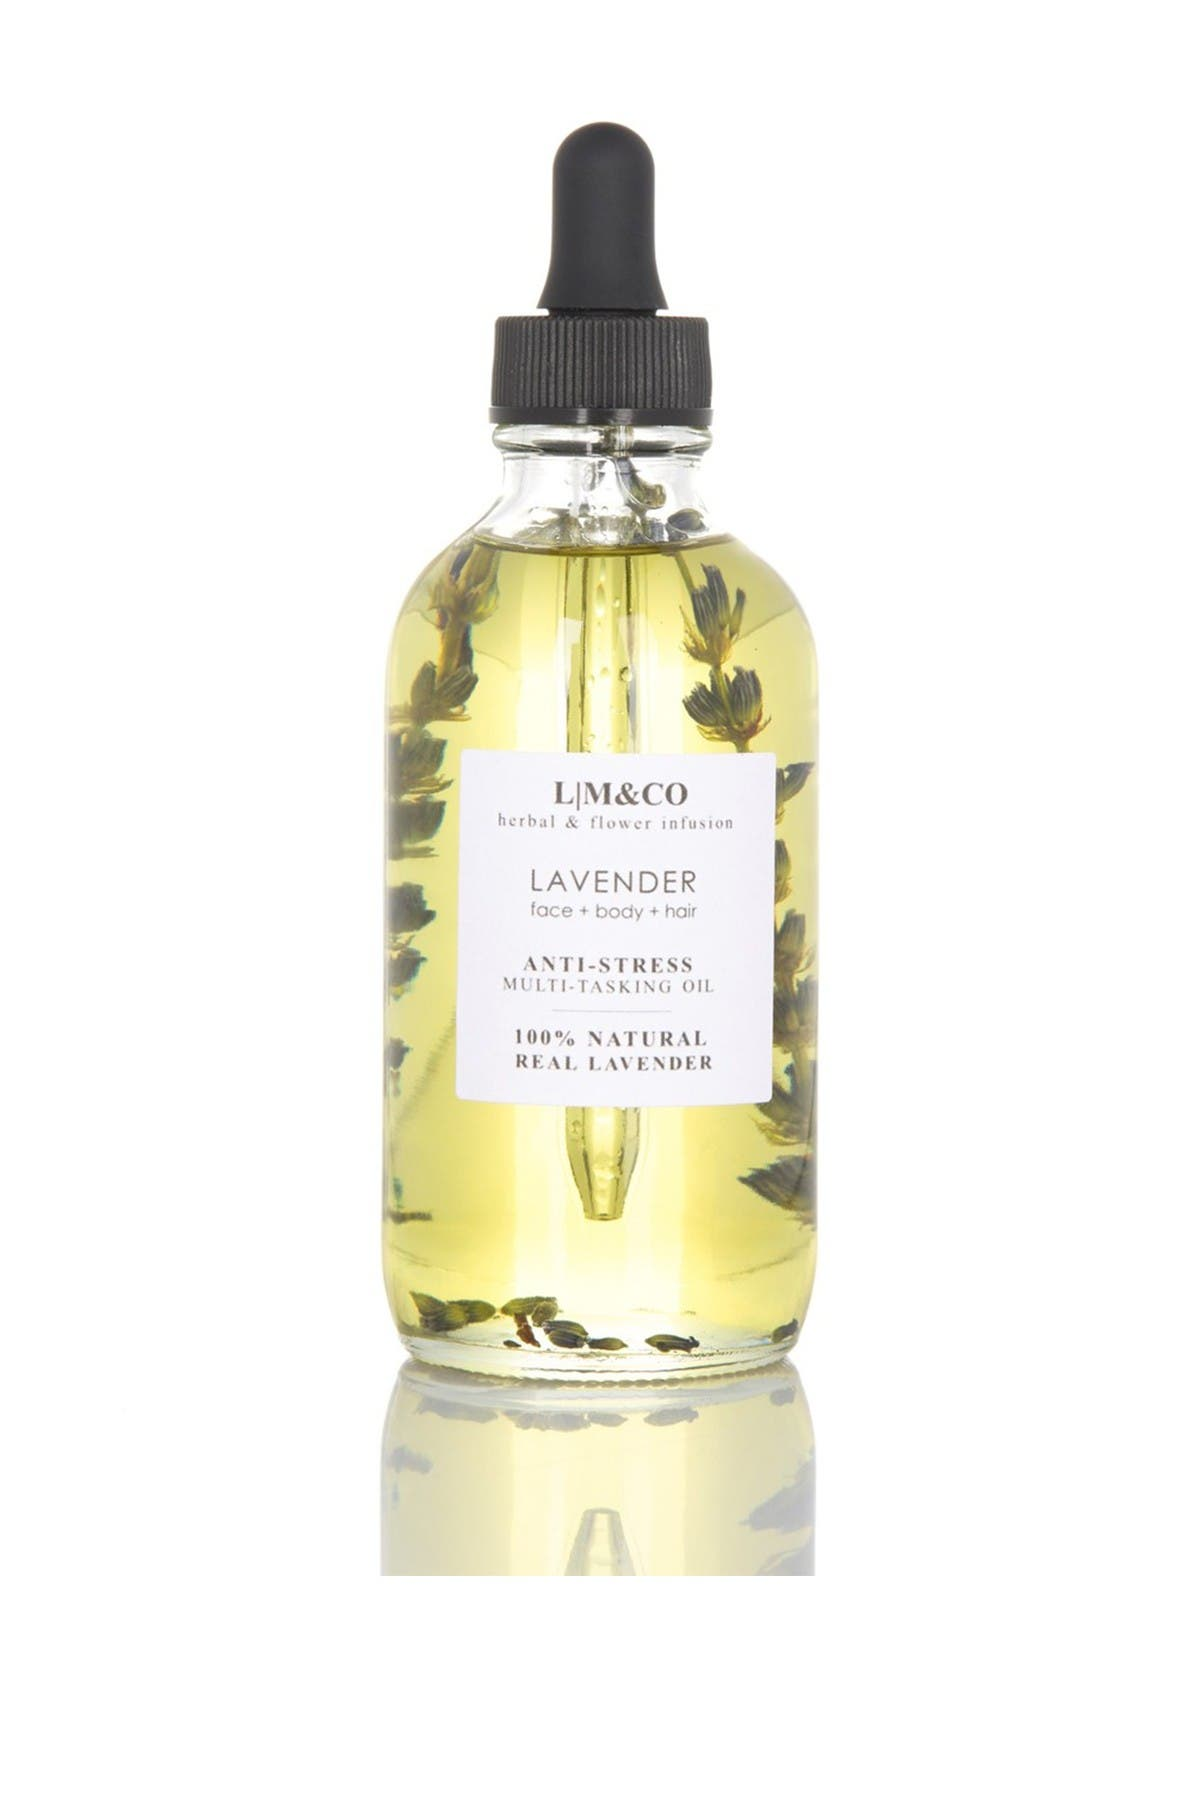 Image of LM AND CO Multi-Tasking Oil - Flower & Herbal Lavender